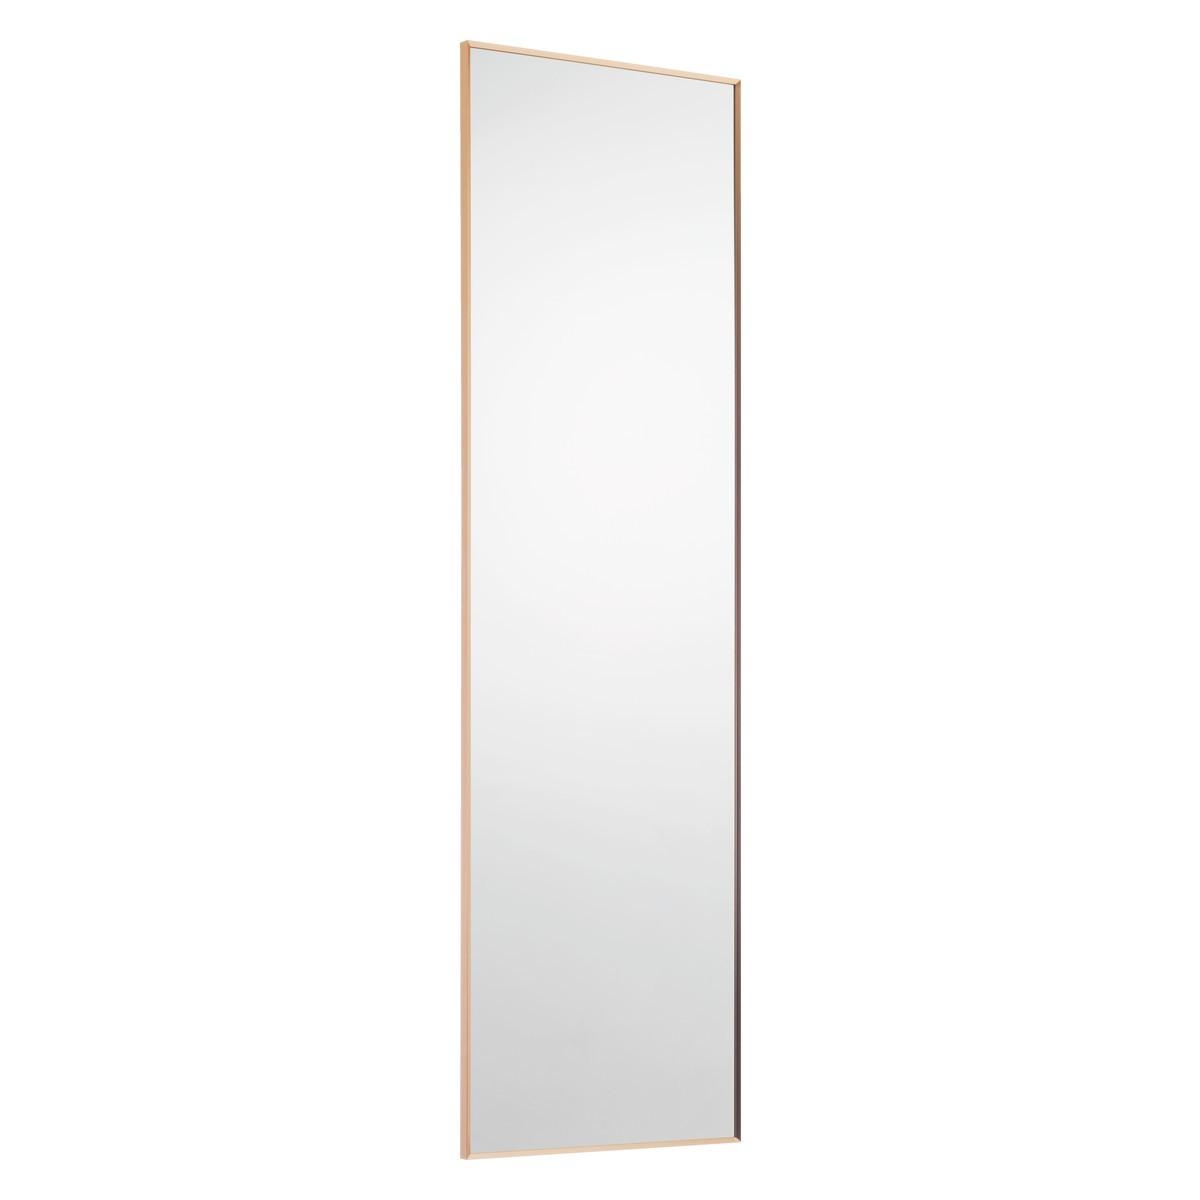 Full Length Frameless Mirror 95 Cute Interior And Frameless Full Pertaining To Wall Mirror Full Length Frameless (Image 8 of 20)